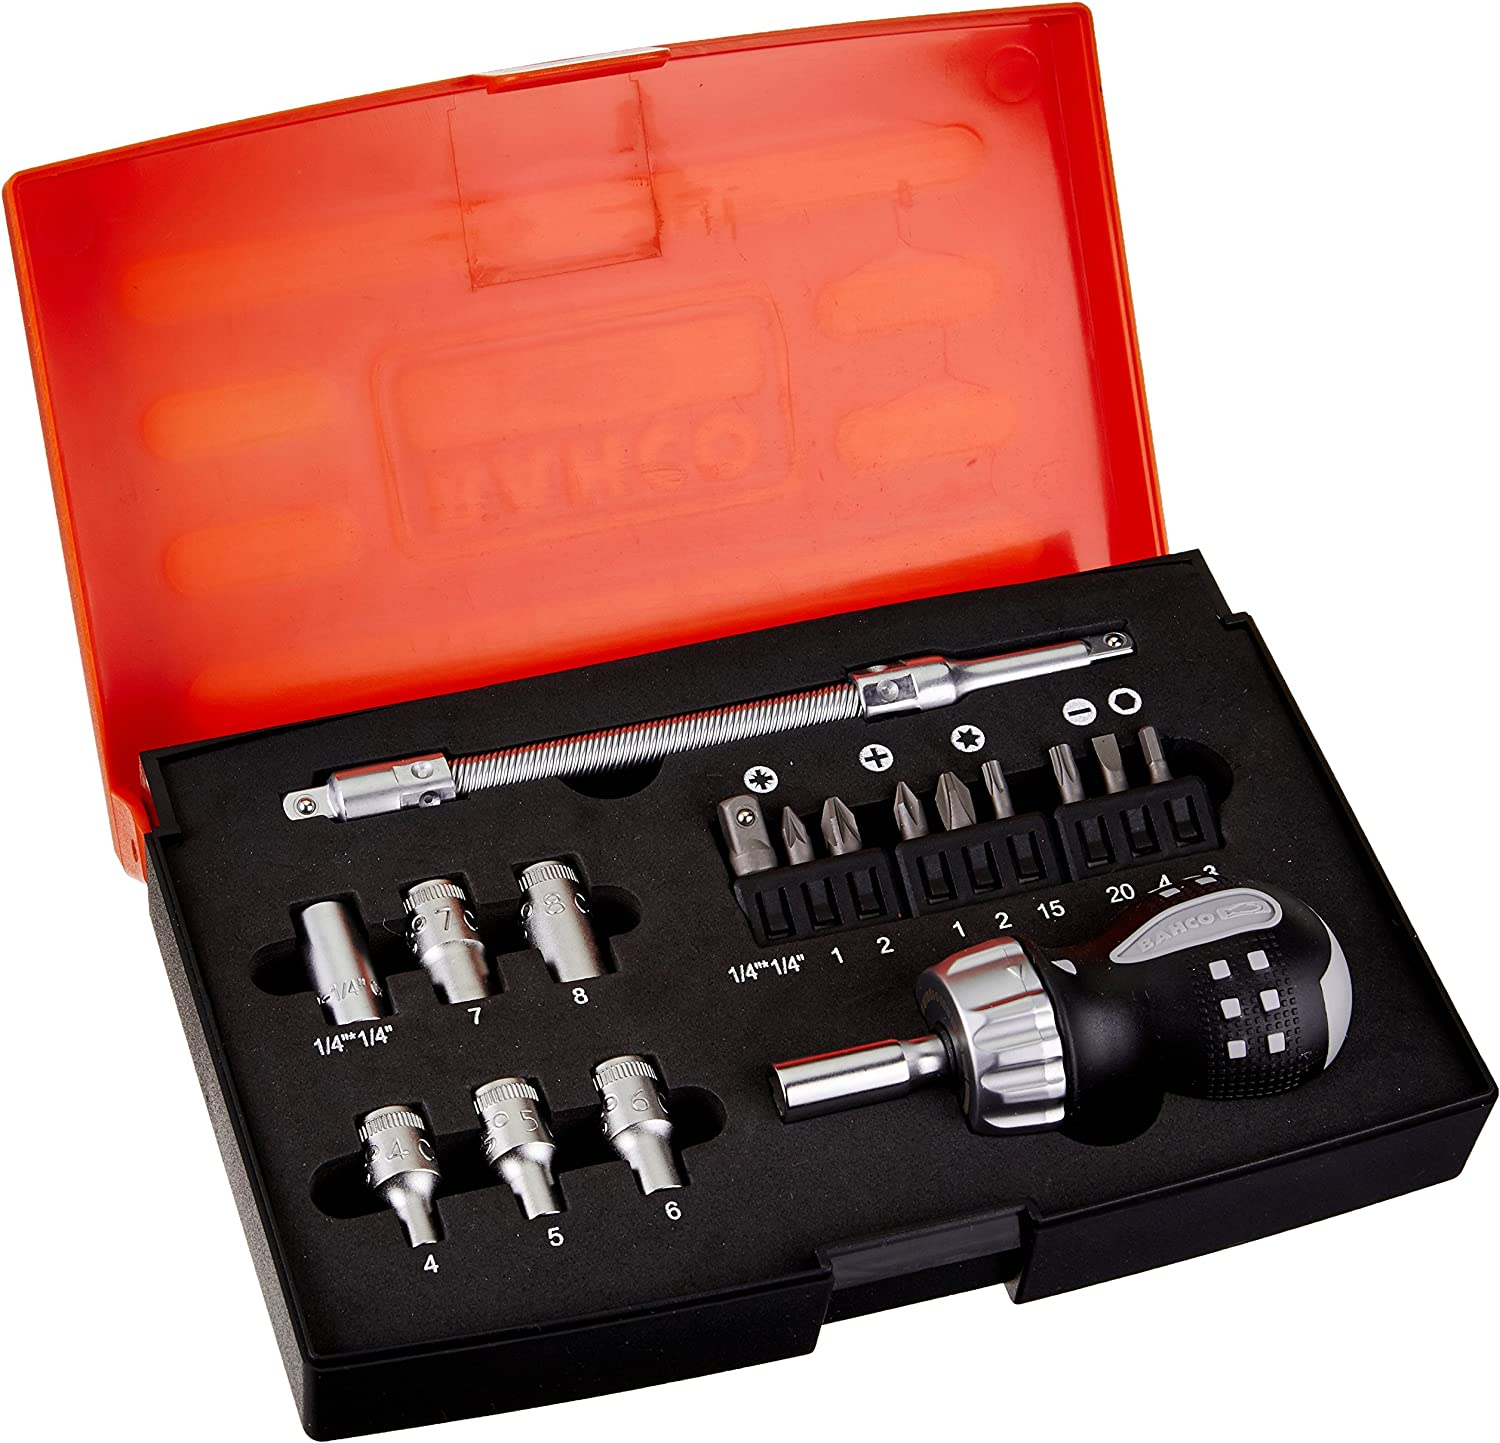 Bahco 808050S-22 Stubby Ratchet Screwdriver Set 22-Piece Snap-On Industrial Brand BAHCO